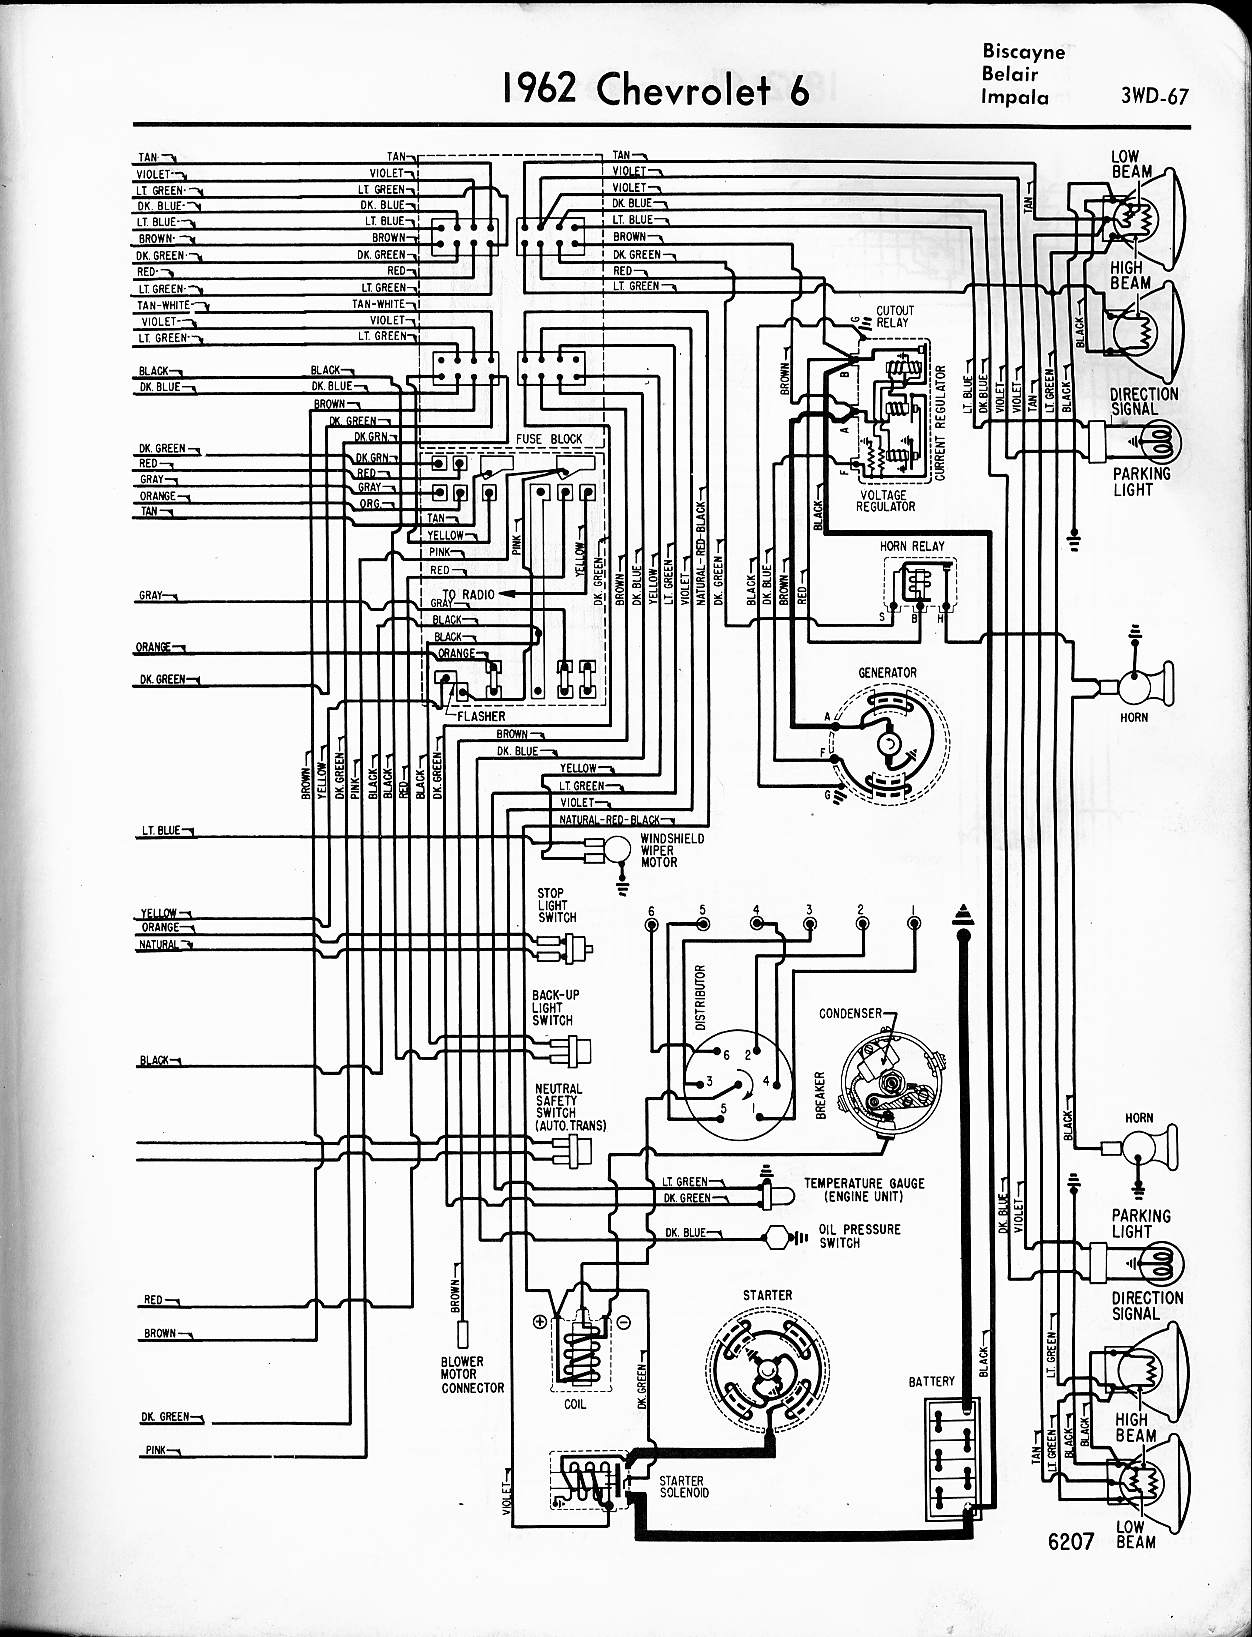 Wiring Diagram For Chevy Trucks 1985 Truck 3500 Sel Ignition Switch Wire: Kawasaki Wind 125 Wiring Diagram At Hrqsolutions.co